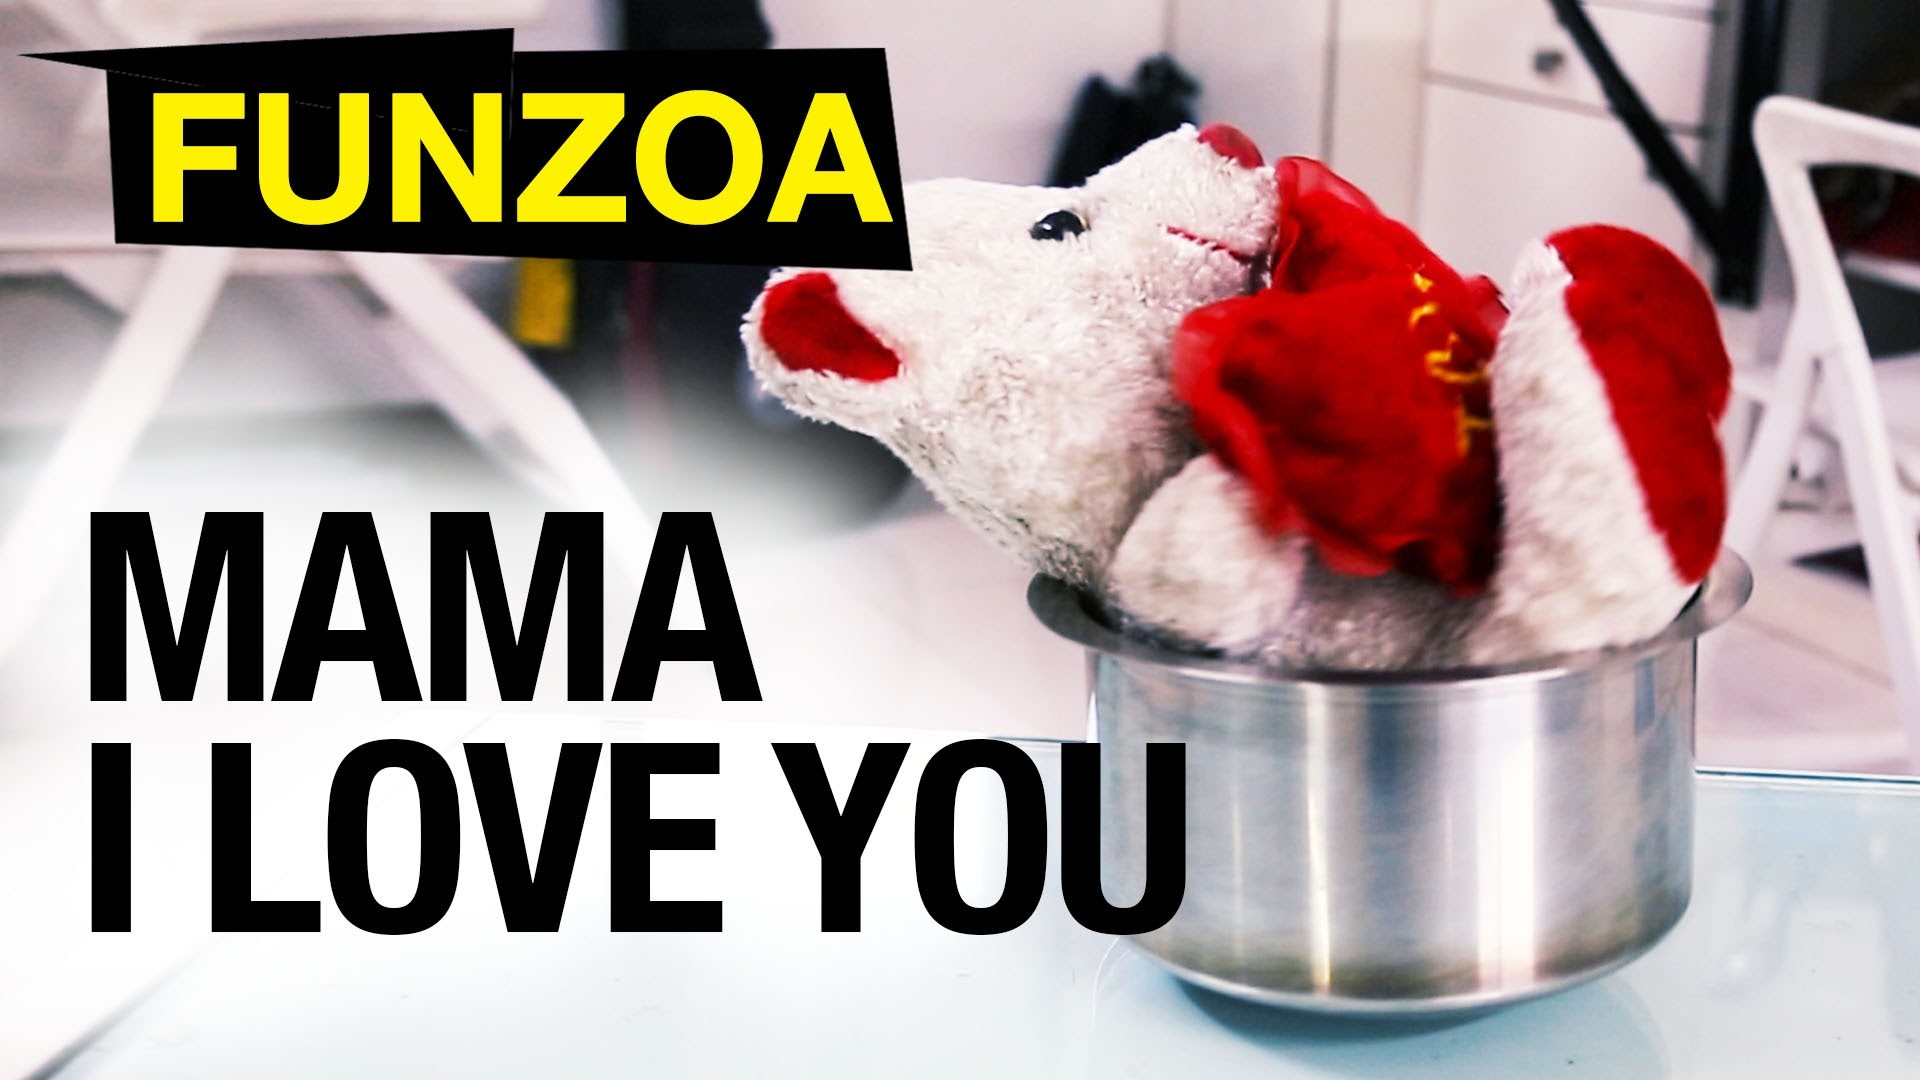 Mama I Love You | Popular Happy Mothers Day Song | Cute Mimi Teddy | Funzoa  Viral Song For Moms – YouTube